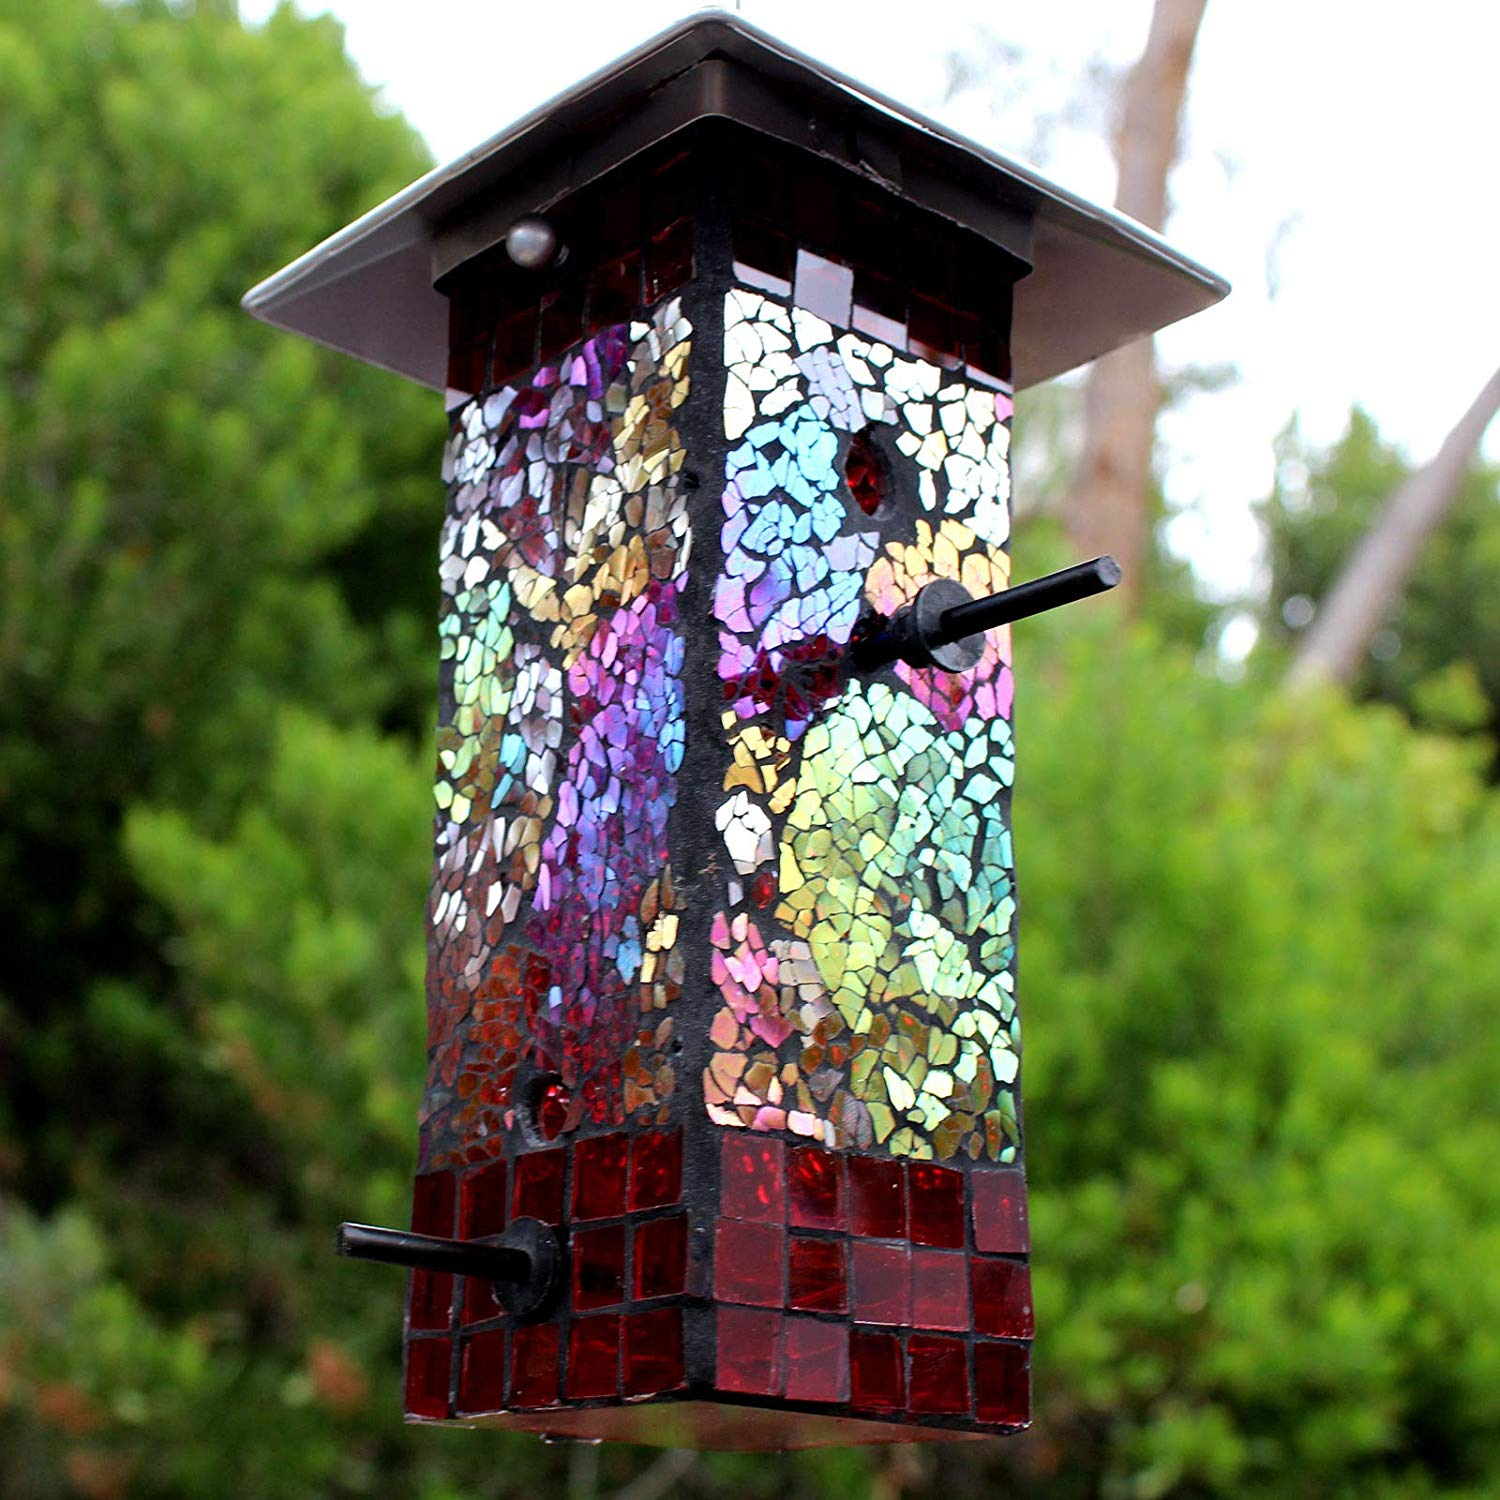 Cheap Free Stained Glass Bird Patterns Find Free Stained Glass Bird